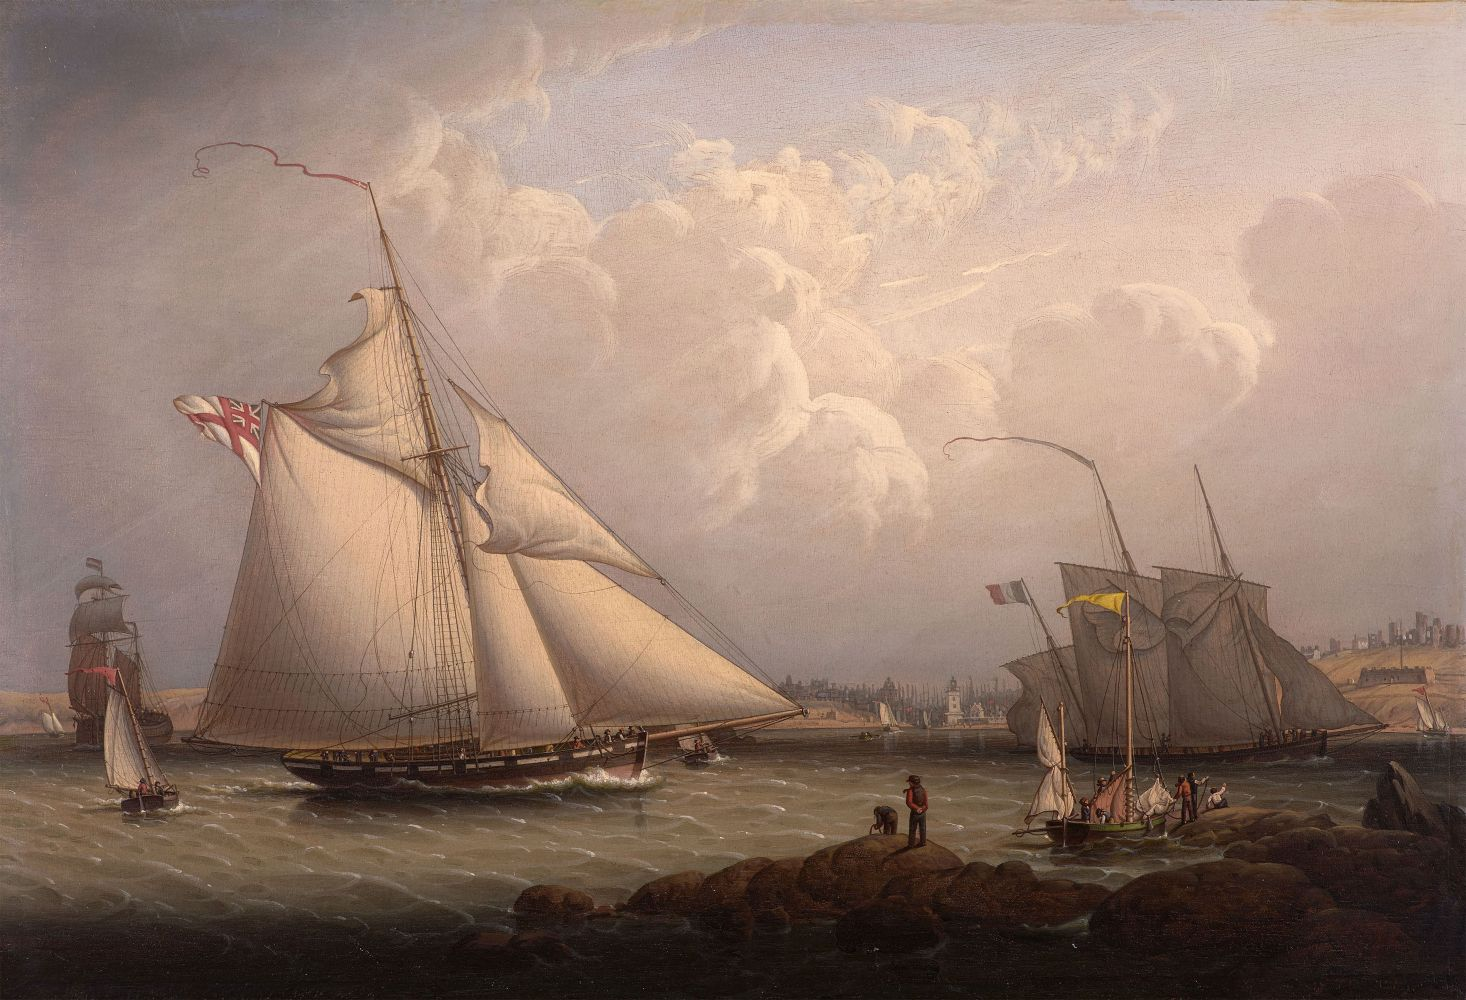 Robert Salmon (1775–c. 1845), English Cutter and Lugger, off North Shields, 1840, oil on panel, 16 1/2 x 24 1/2 in., inscribed verso in artist's hand: No. 28 / Painted by R. Salmon/ 1840